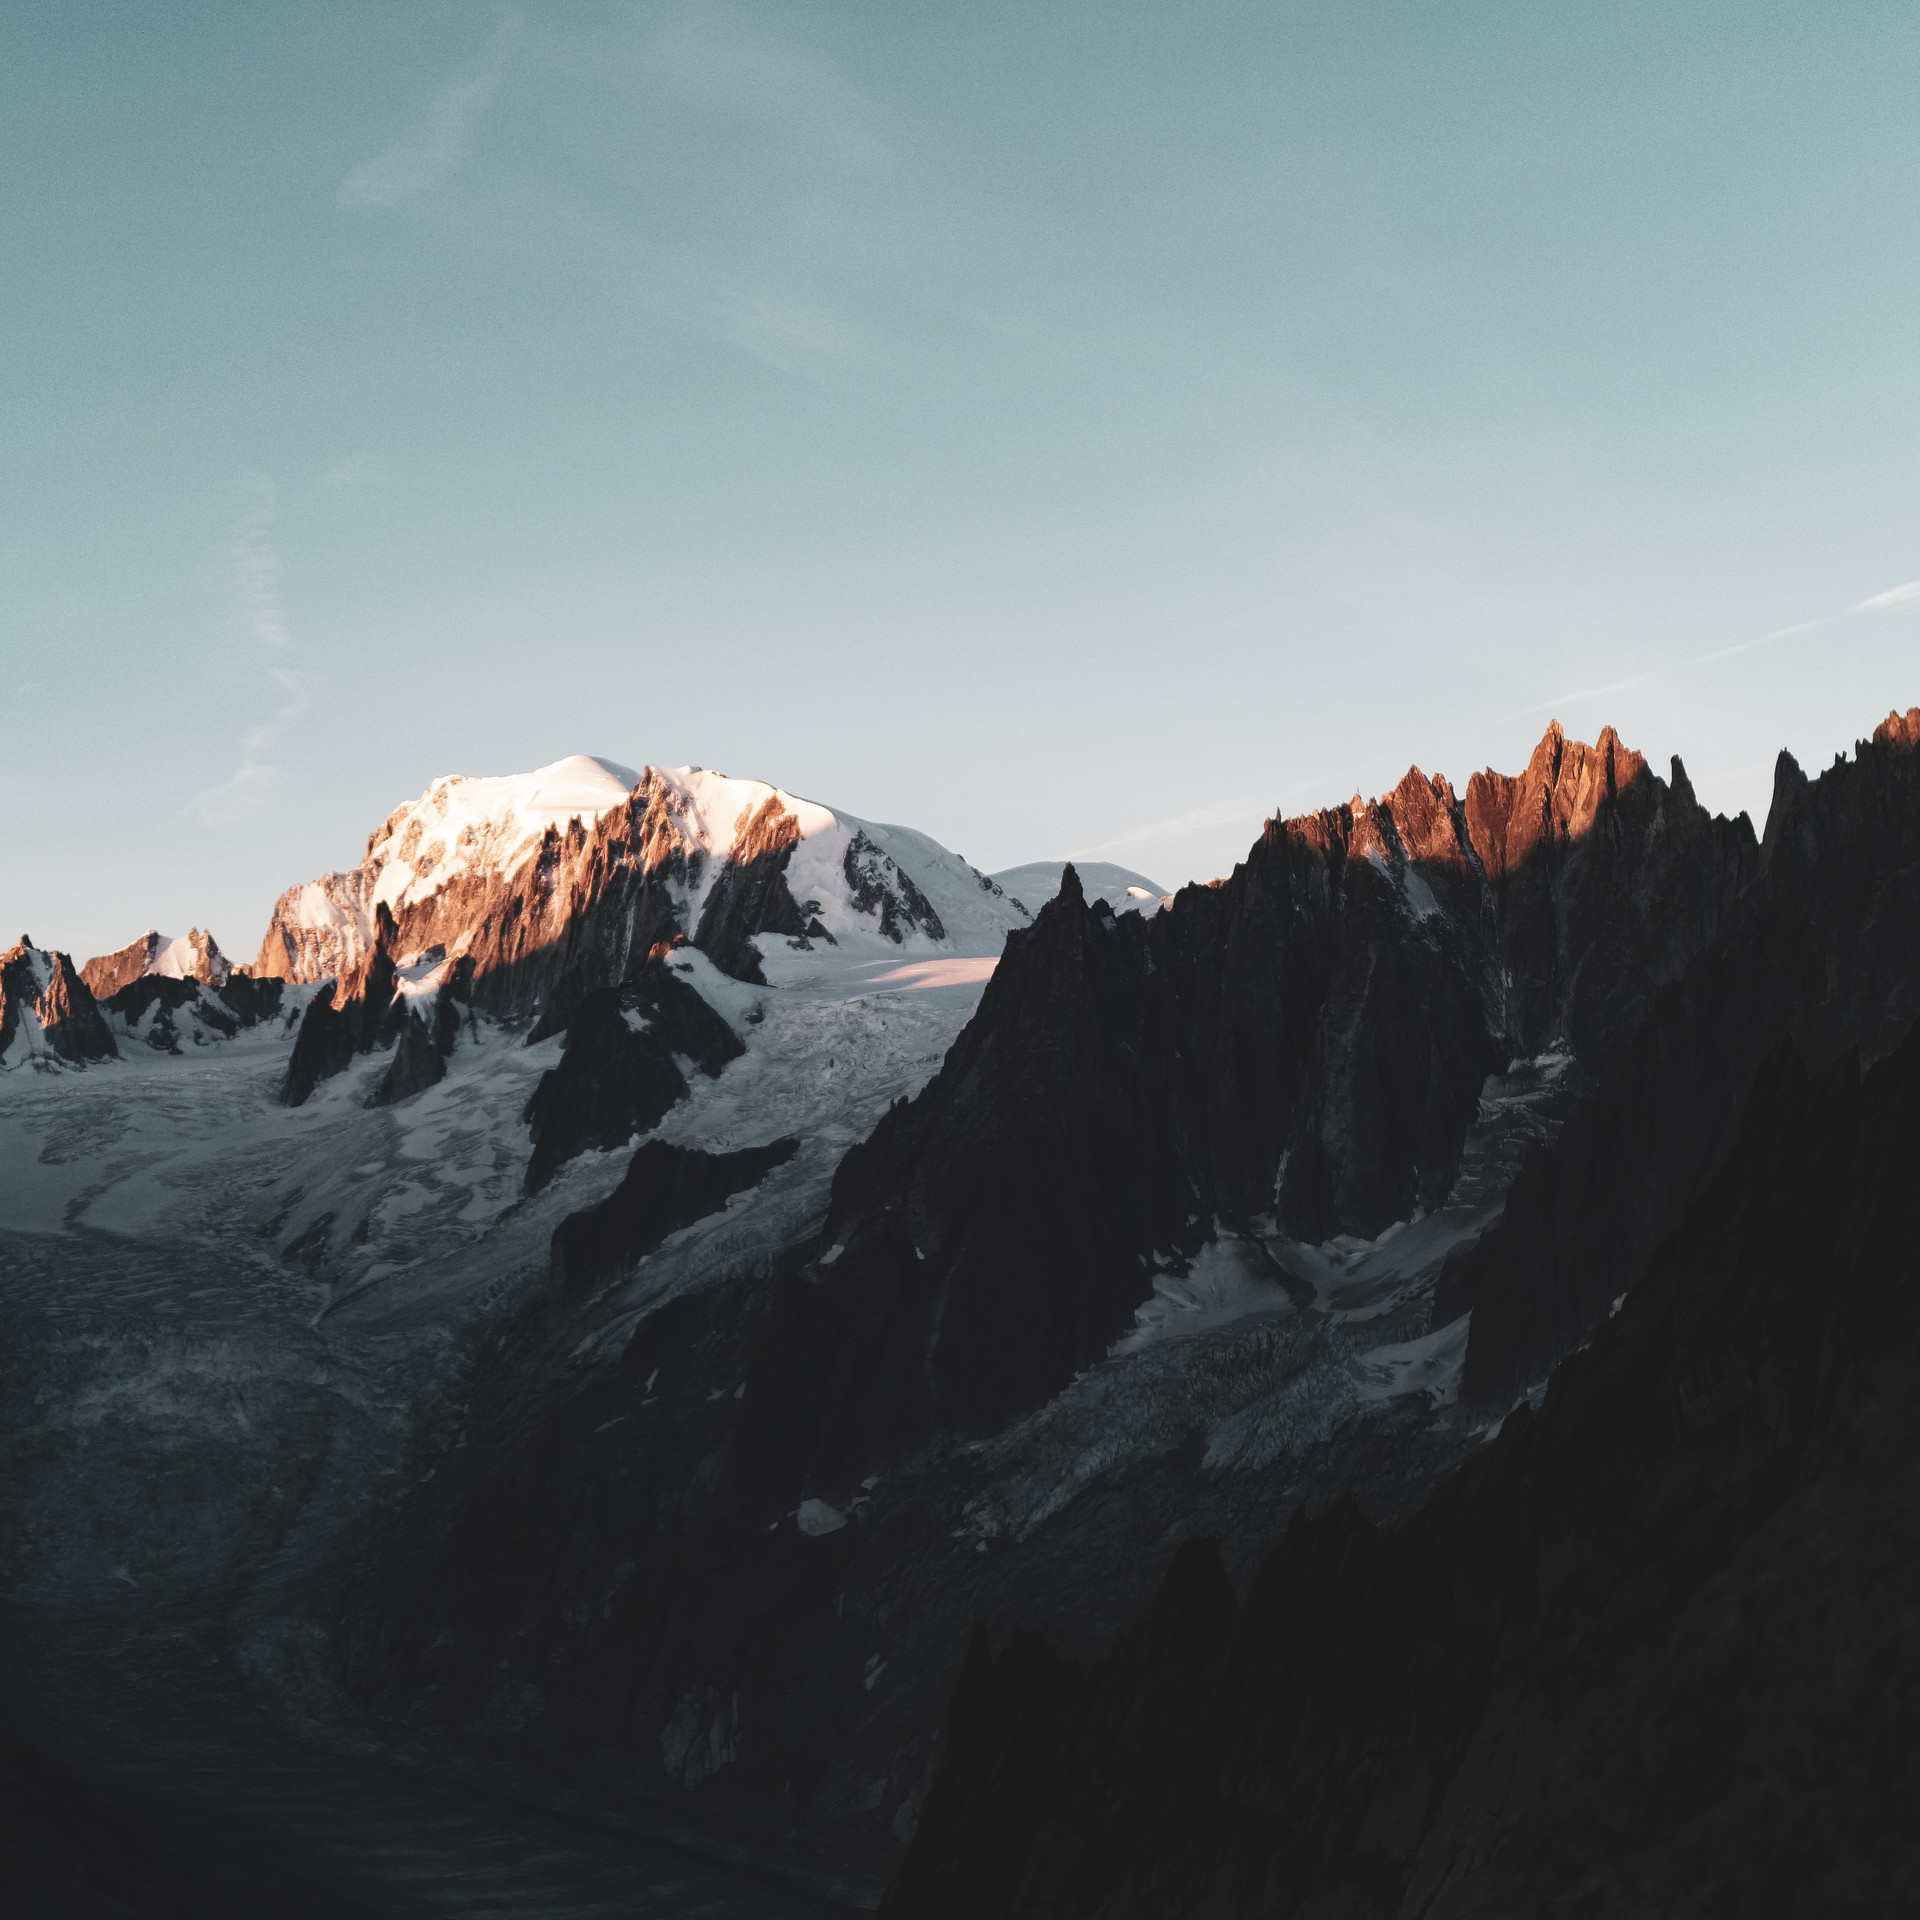 Mont Blanc from Couvercle